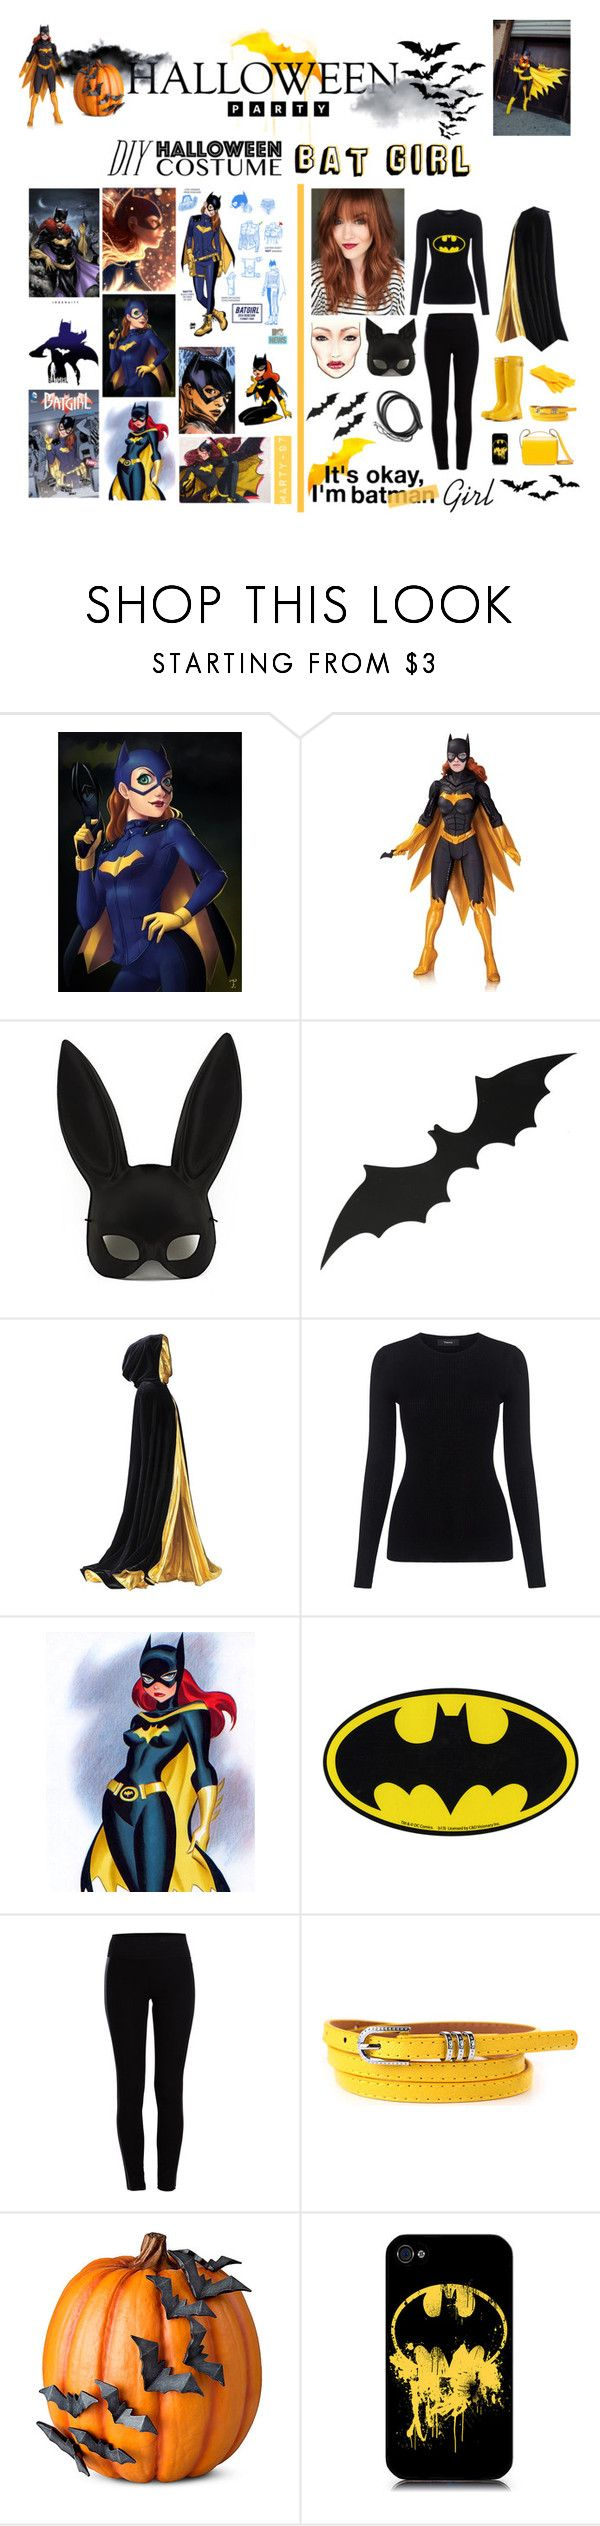 Halloween Party: Bat Girl! by marty-97 on Polyvore featuring moda, Theory, Pieces, Masquerade, Marni, Improvements, Burnside, Episode, Garcia and Rogues Gallery